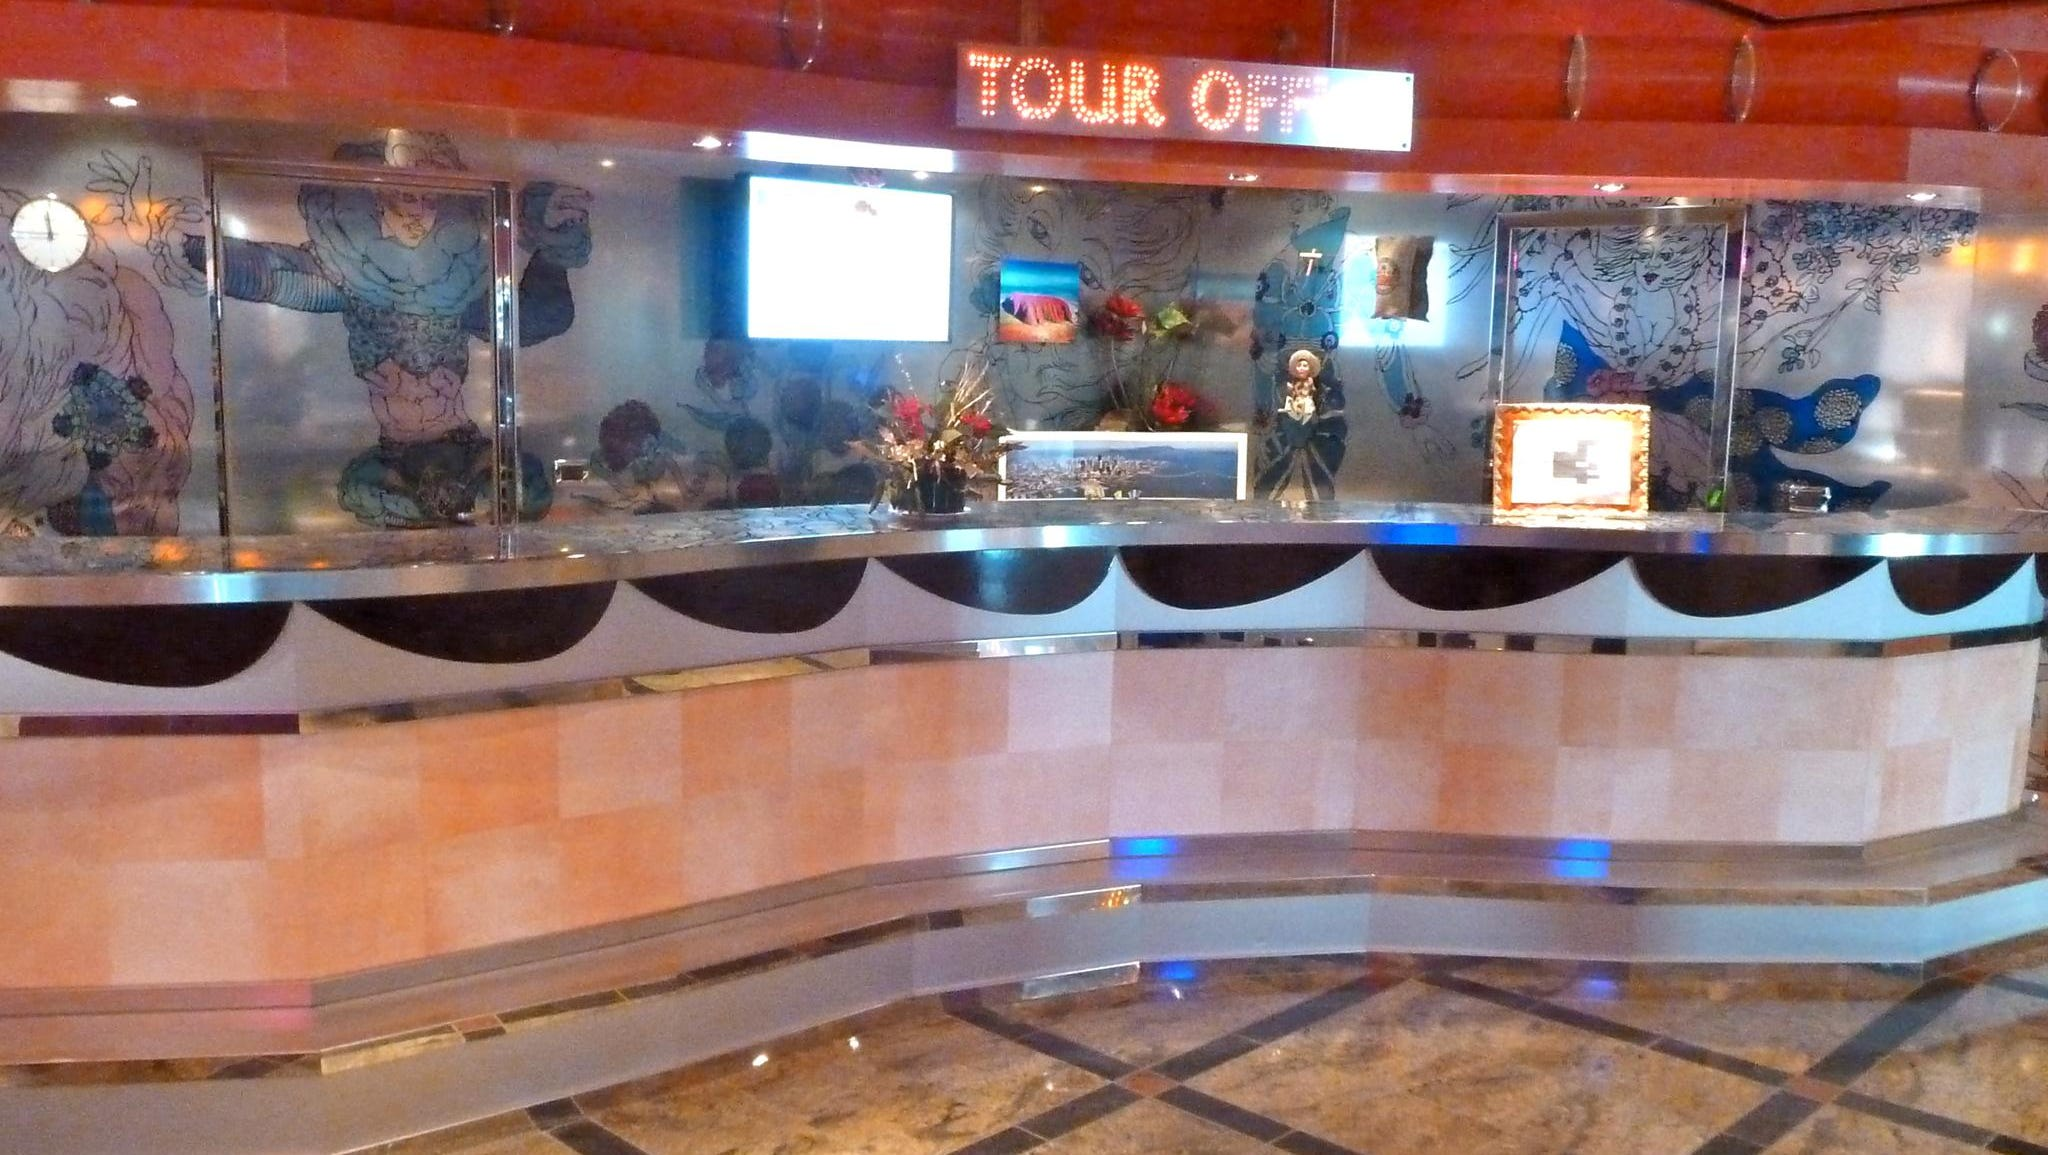 On the port side of the Atrio delle Delizie, there is a tour office, which is followed by the guest services desk.